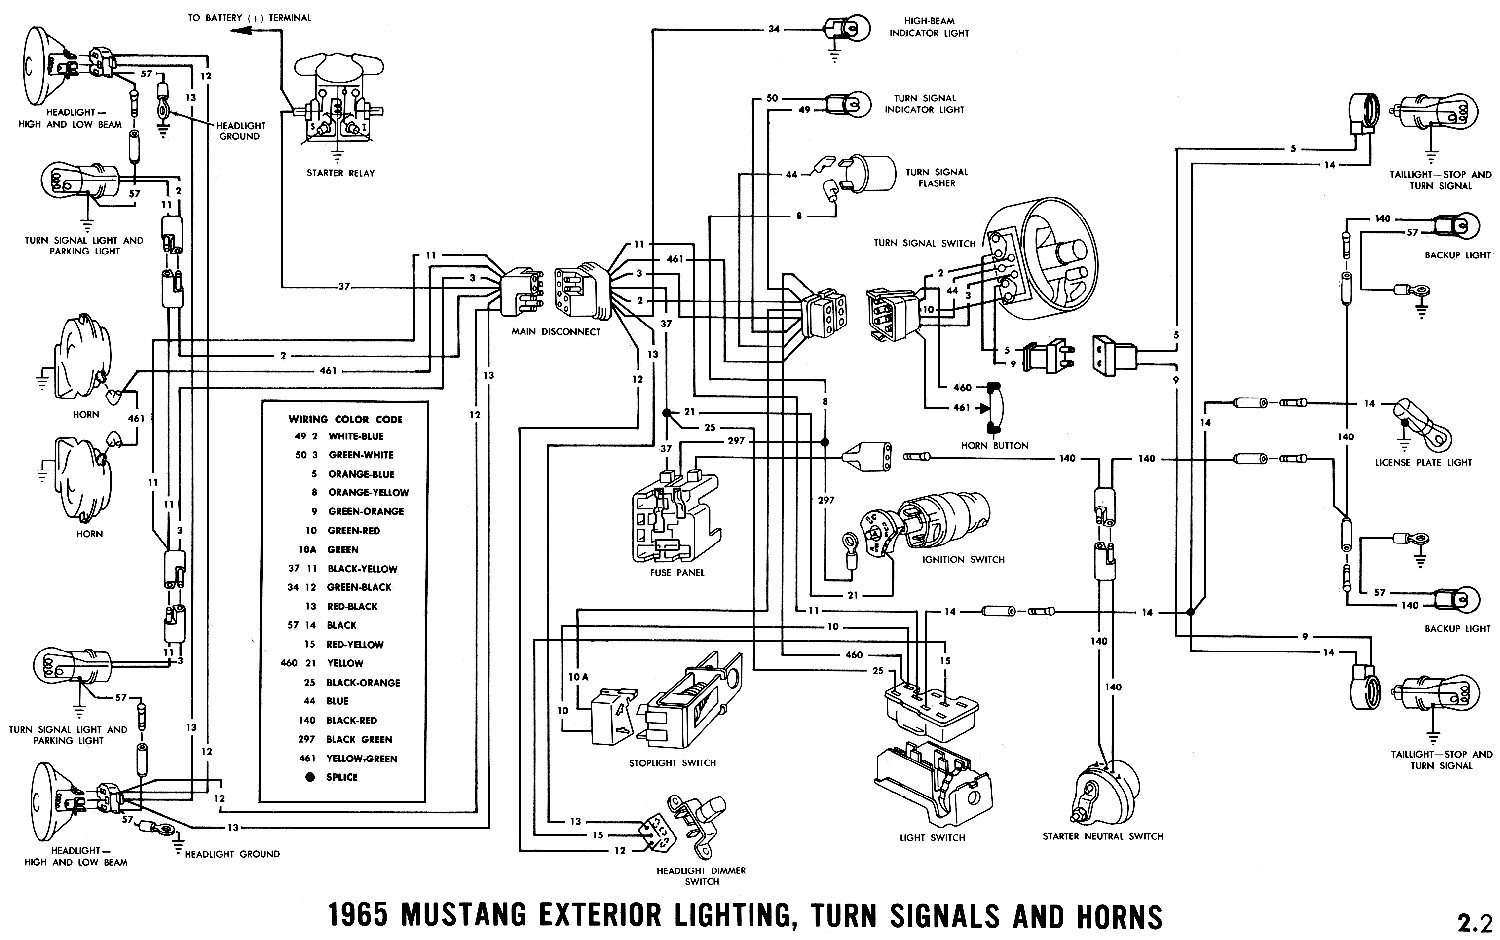 1970 Mustang Fuse Panel Diagram Free Wiring For You 06 1965 Box Origin Rh 4 10 2 Darklifezine De 2004